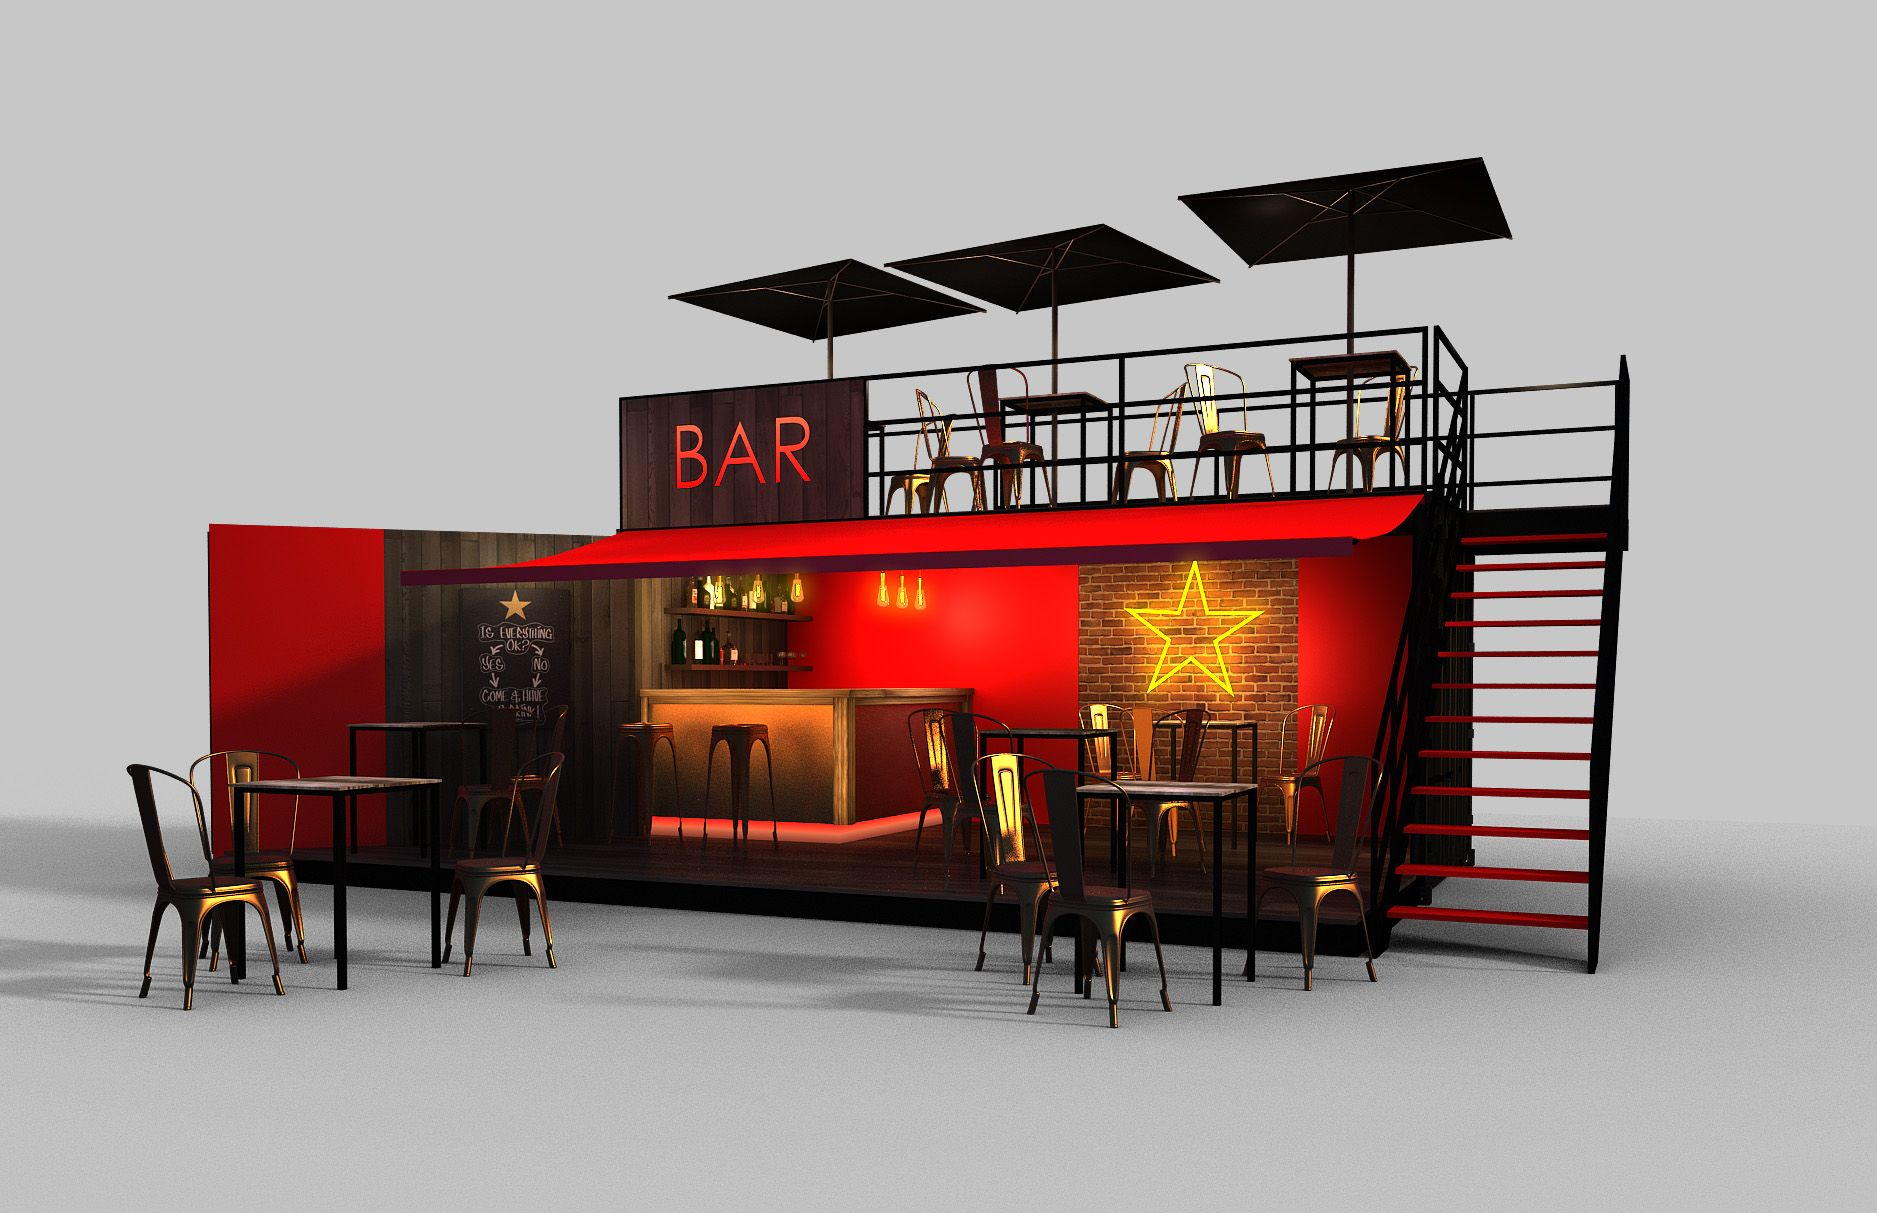 Pin By Anolan On Asahi Beer Container Bar Container Restaurant Shipping Container Cafe